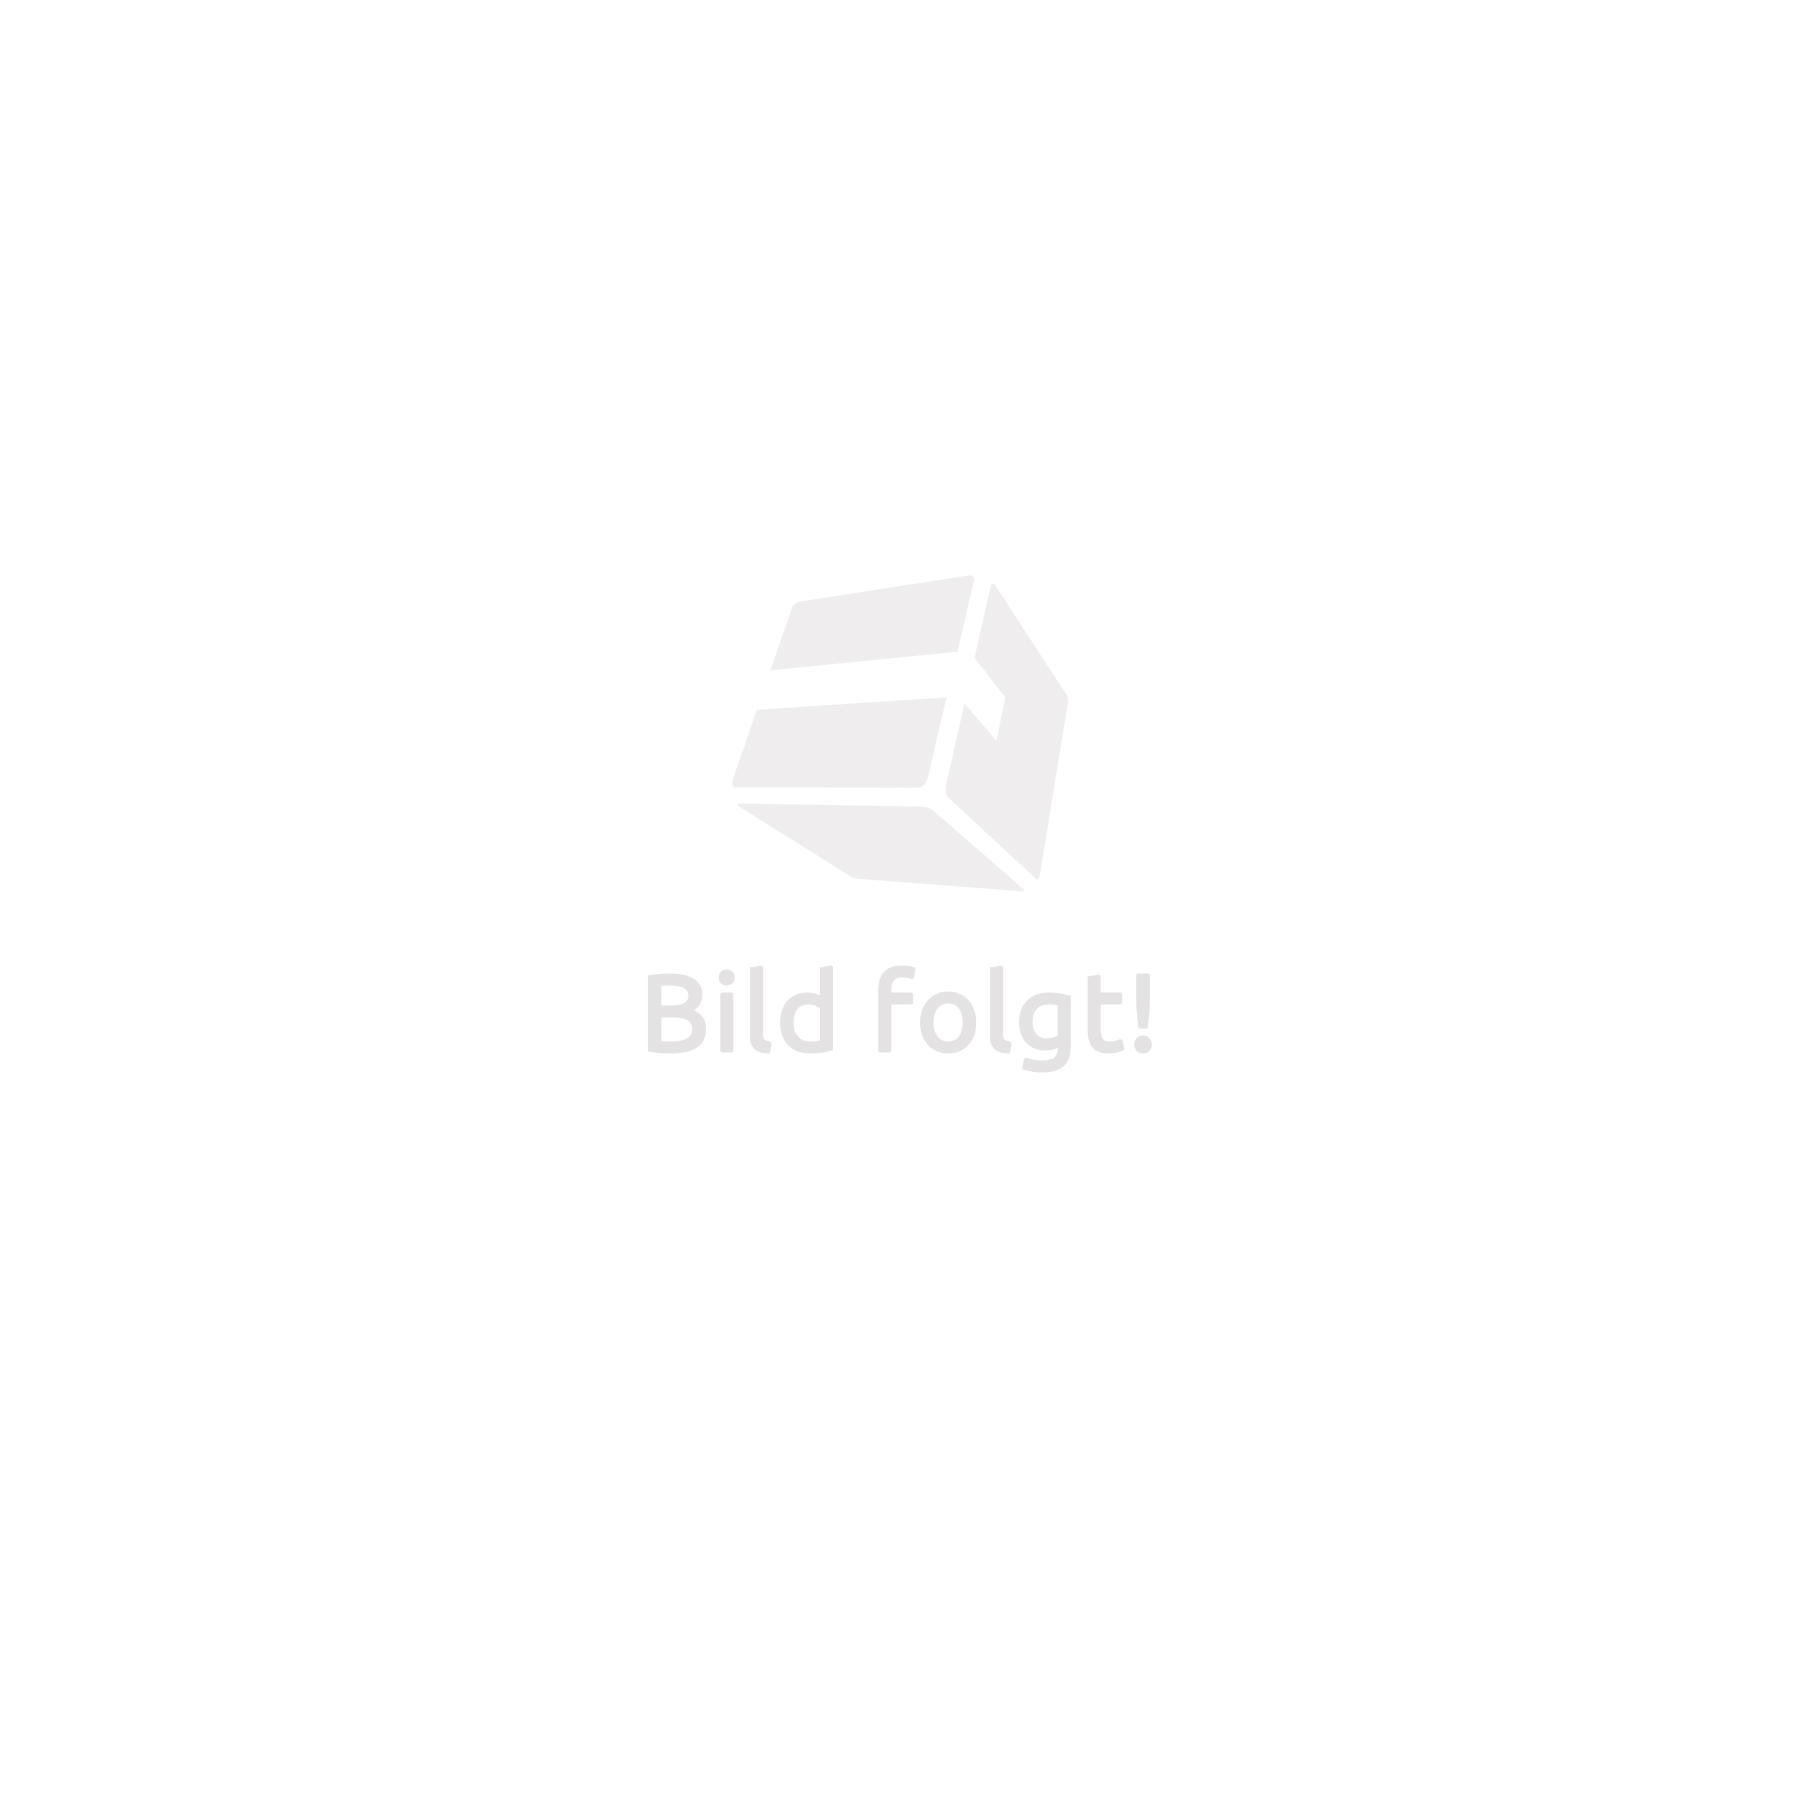 Chaise de massage, avec rembourrage épais, sac de transport blanc